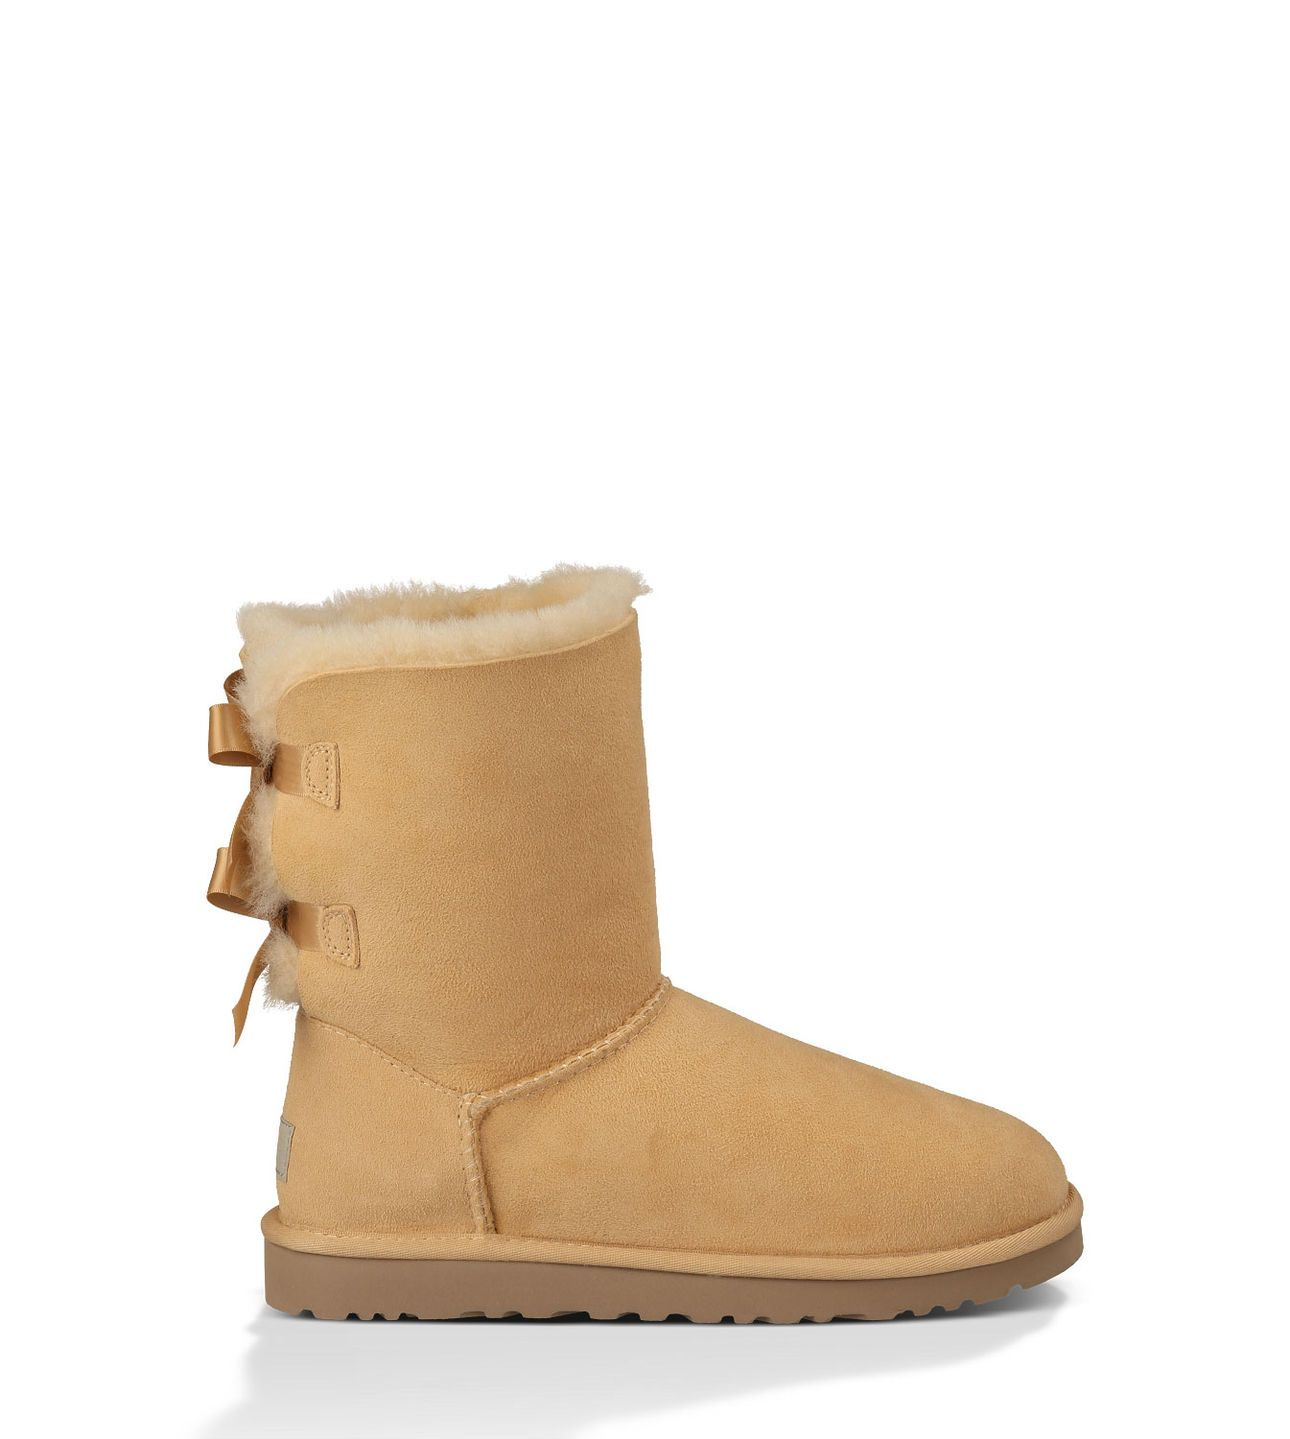 4c3f225599a Women's Share this product Bailey Bow II Boot | Christmas list ...